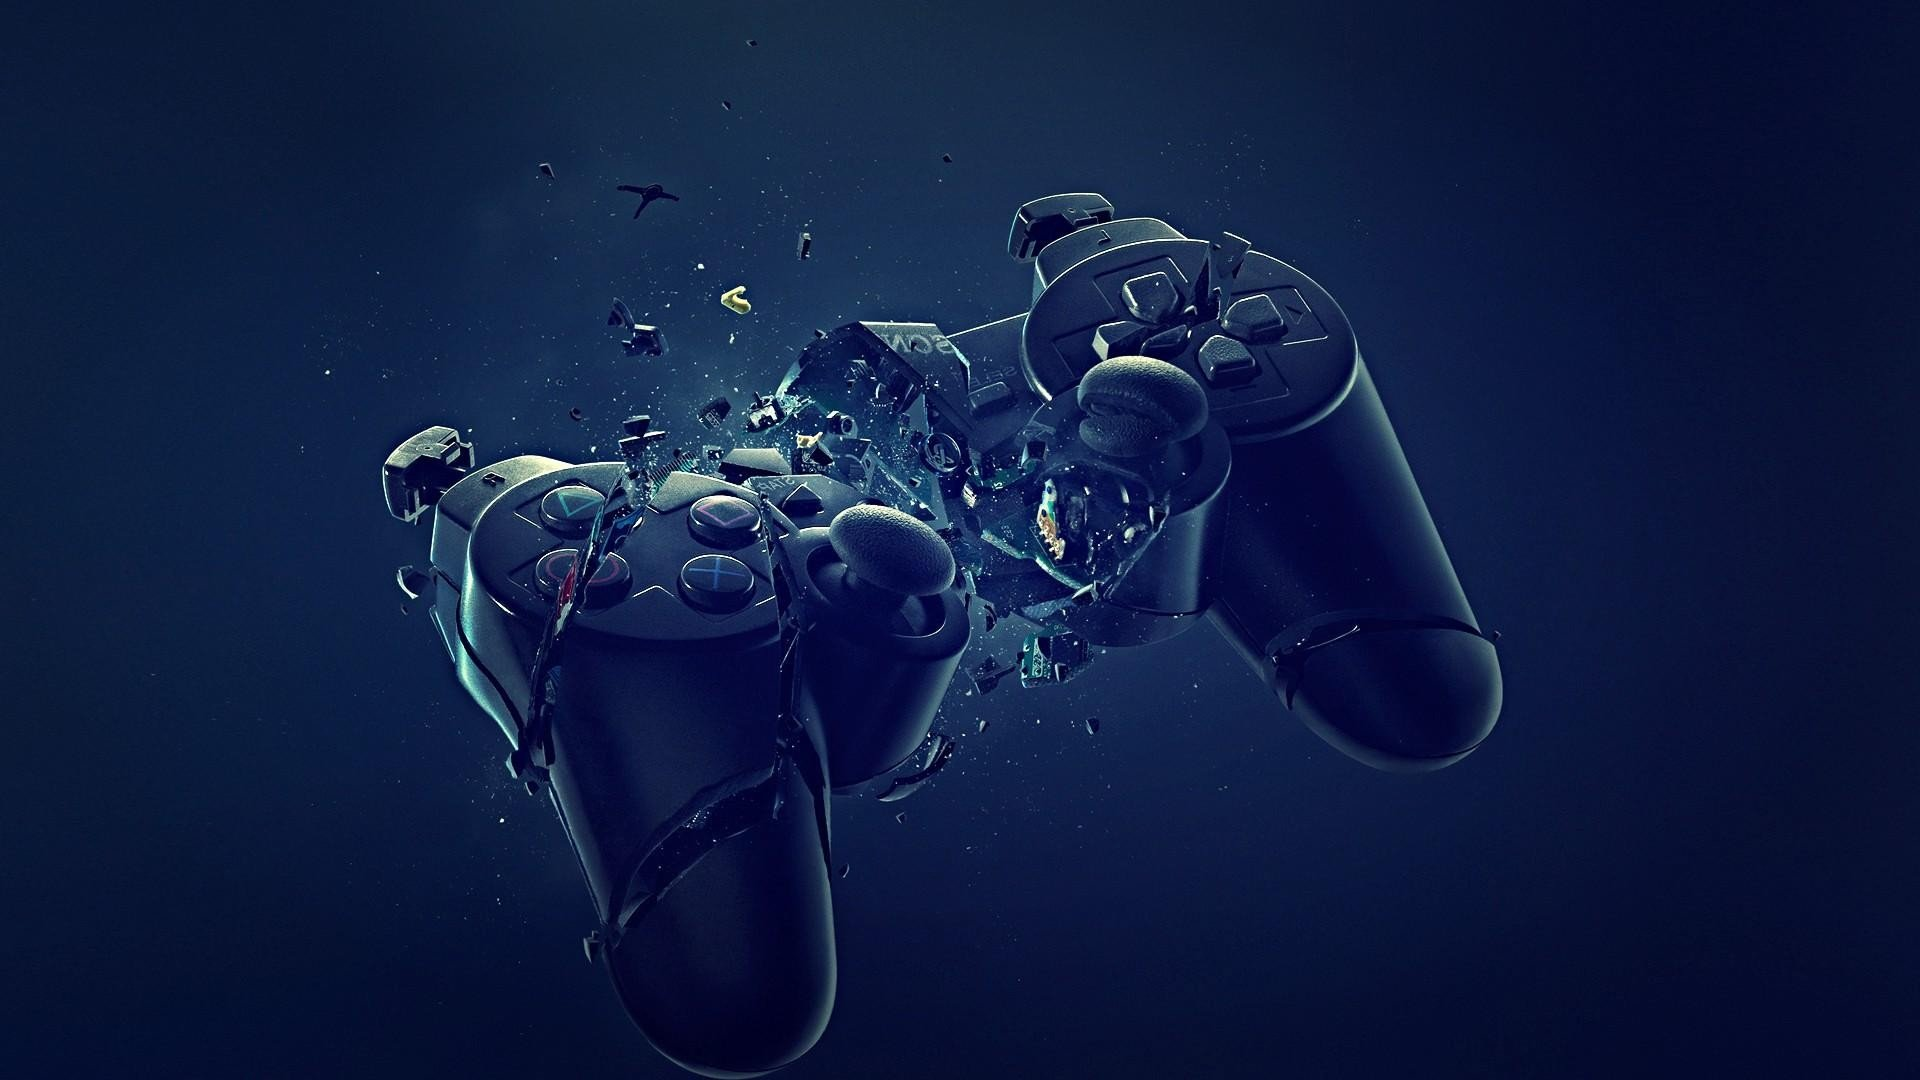 10 Latest Ps4 Games Wallpaper Hd Full Hd 1080p For Pc: Cool PS4 Wallpaper